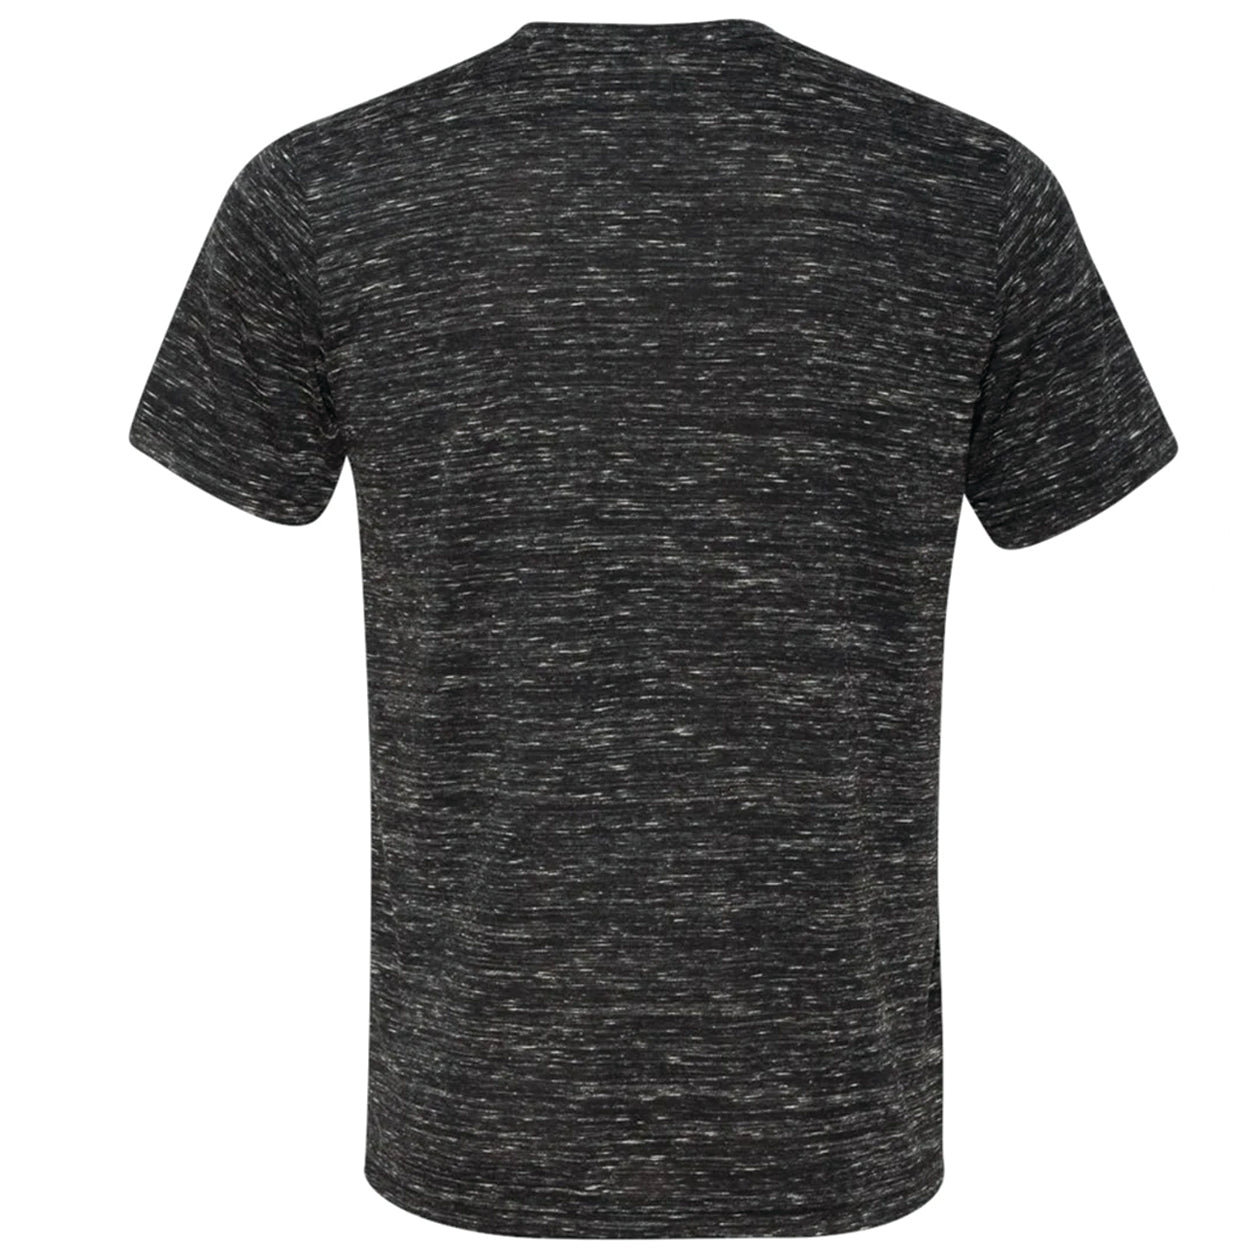 3 PACK MAX BLACK -  Men's Knit T-Shirts / By Robert James